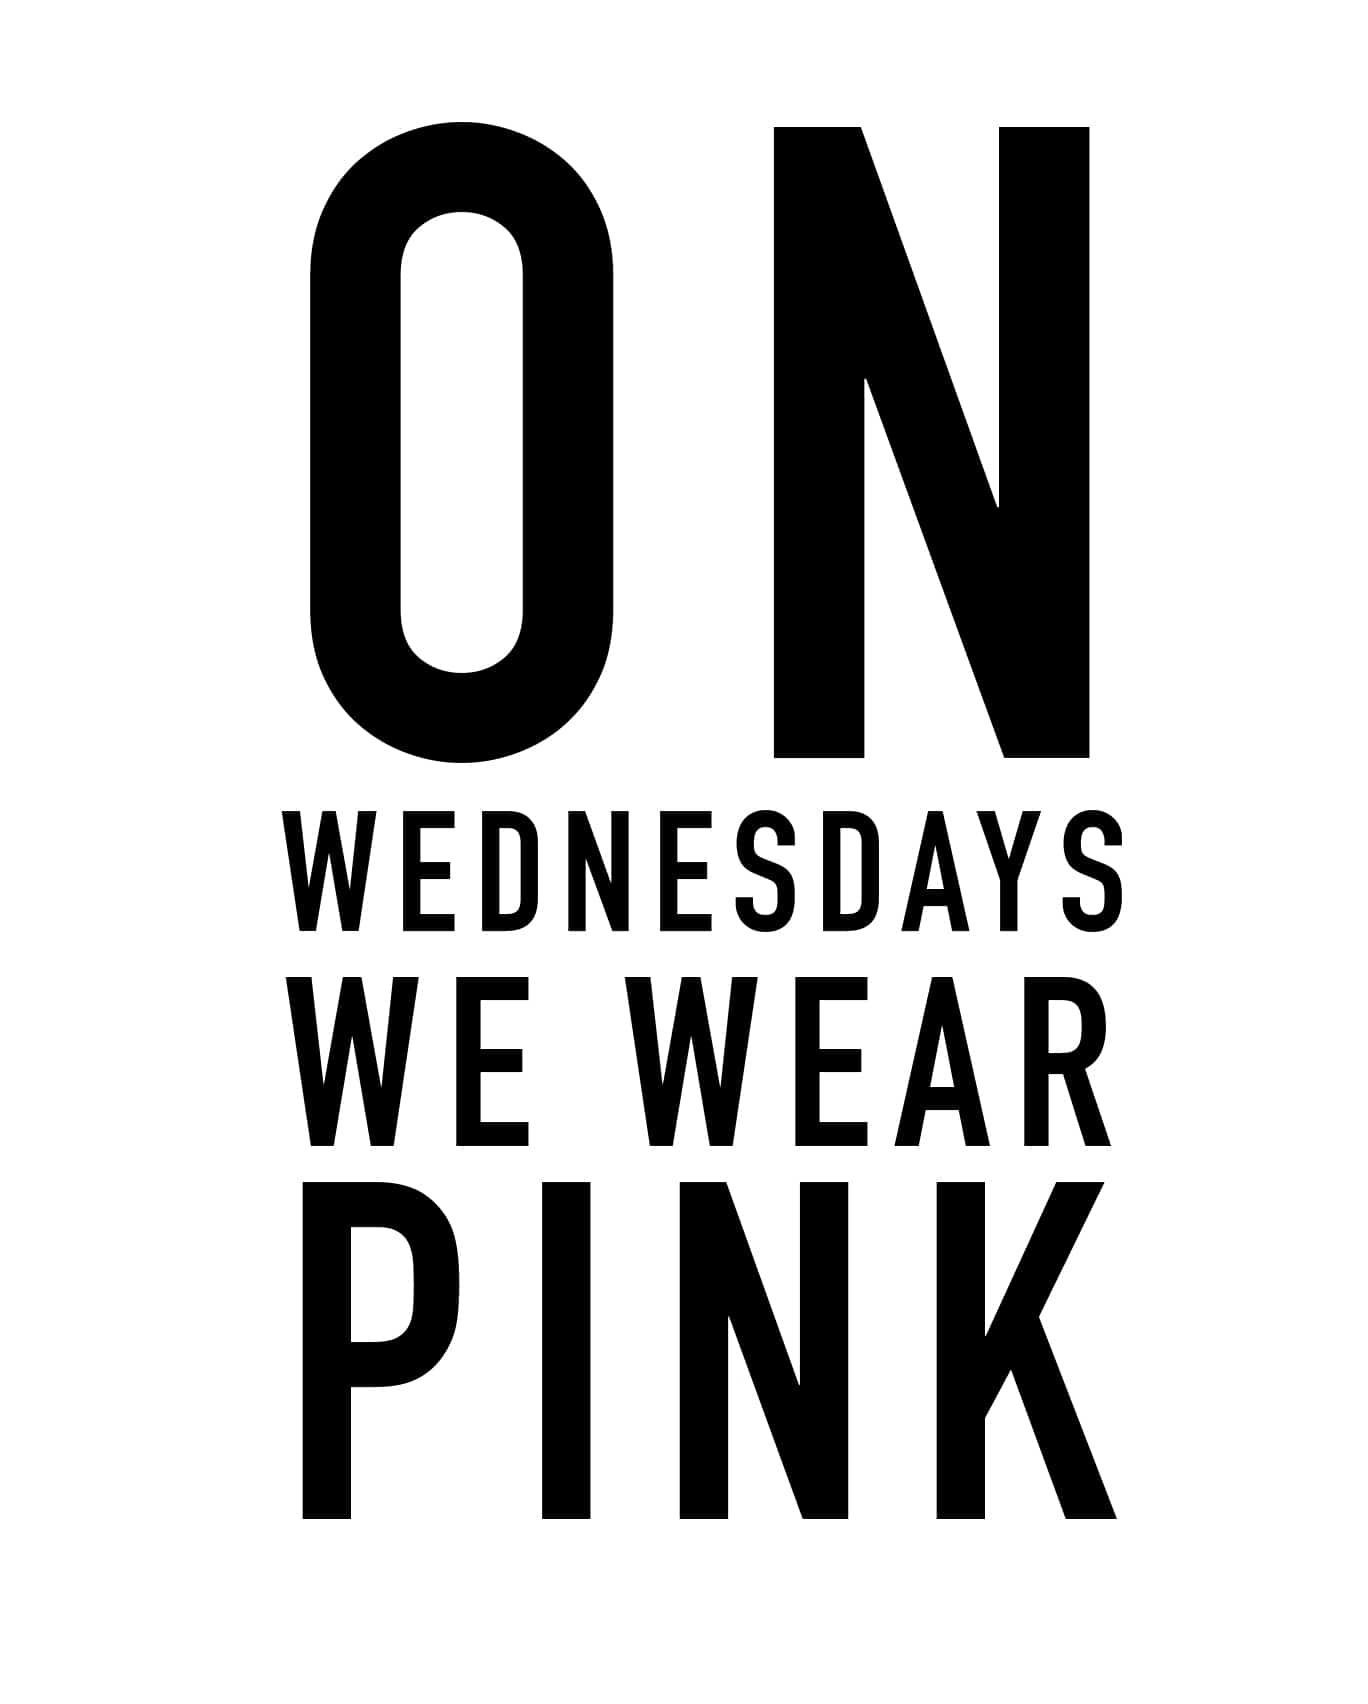 Mean Girls Quotes On Wednesdays We Wear Pink: DIY MEAN GIRLS QUOTE GLASSES PERFECT FOR A MEAN GIRLS